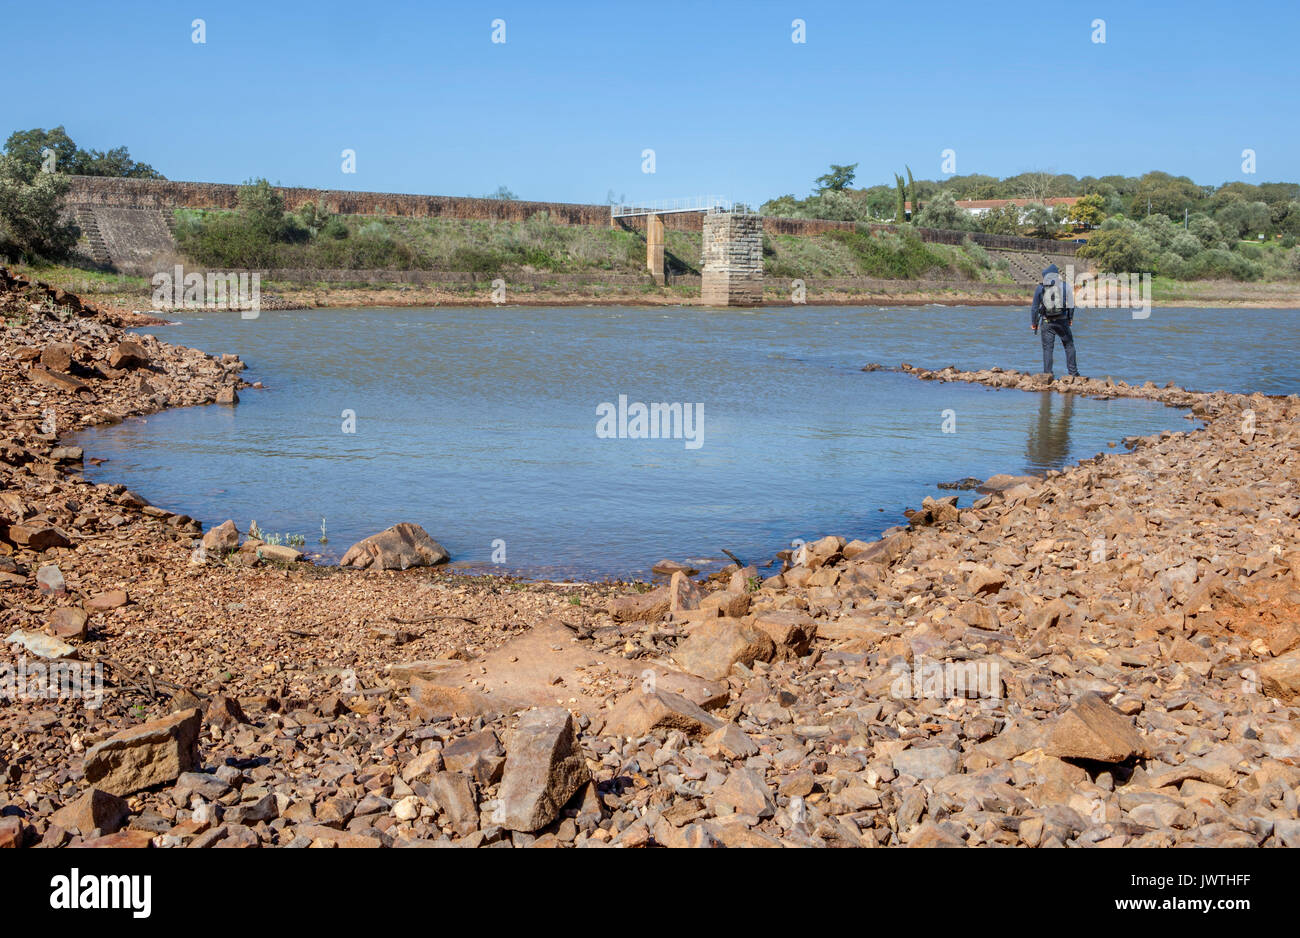 Man overlooking the Roman Dam of Cornalvo. This dam was declared National Monument on Dec 13th 1912, and it is still - Stock Image